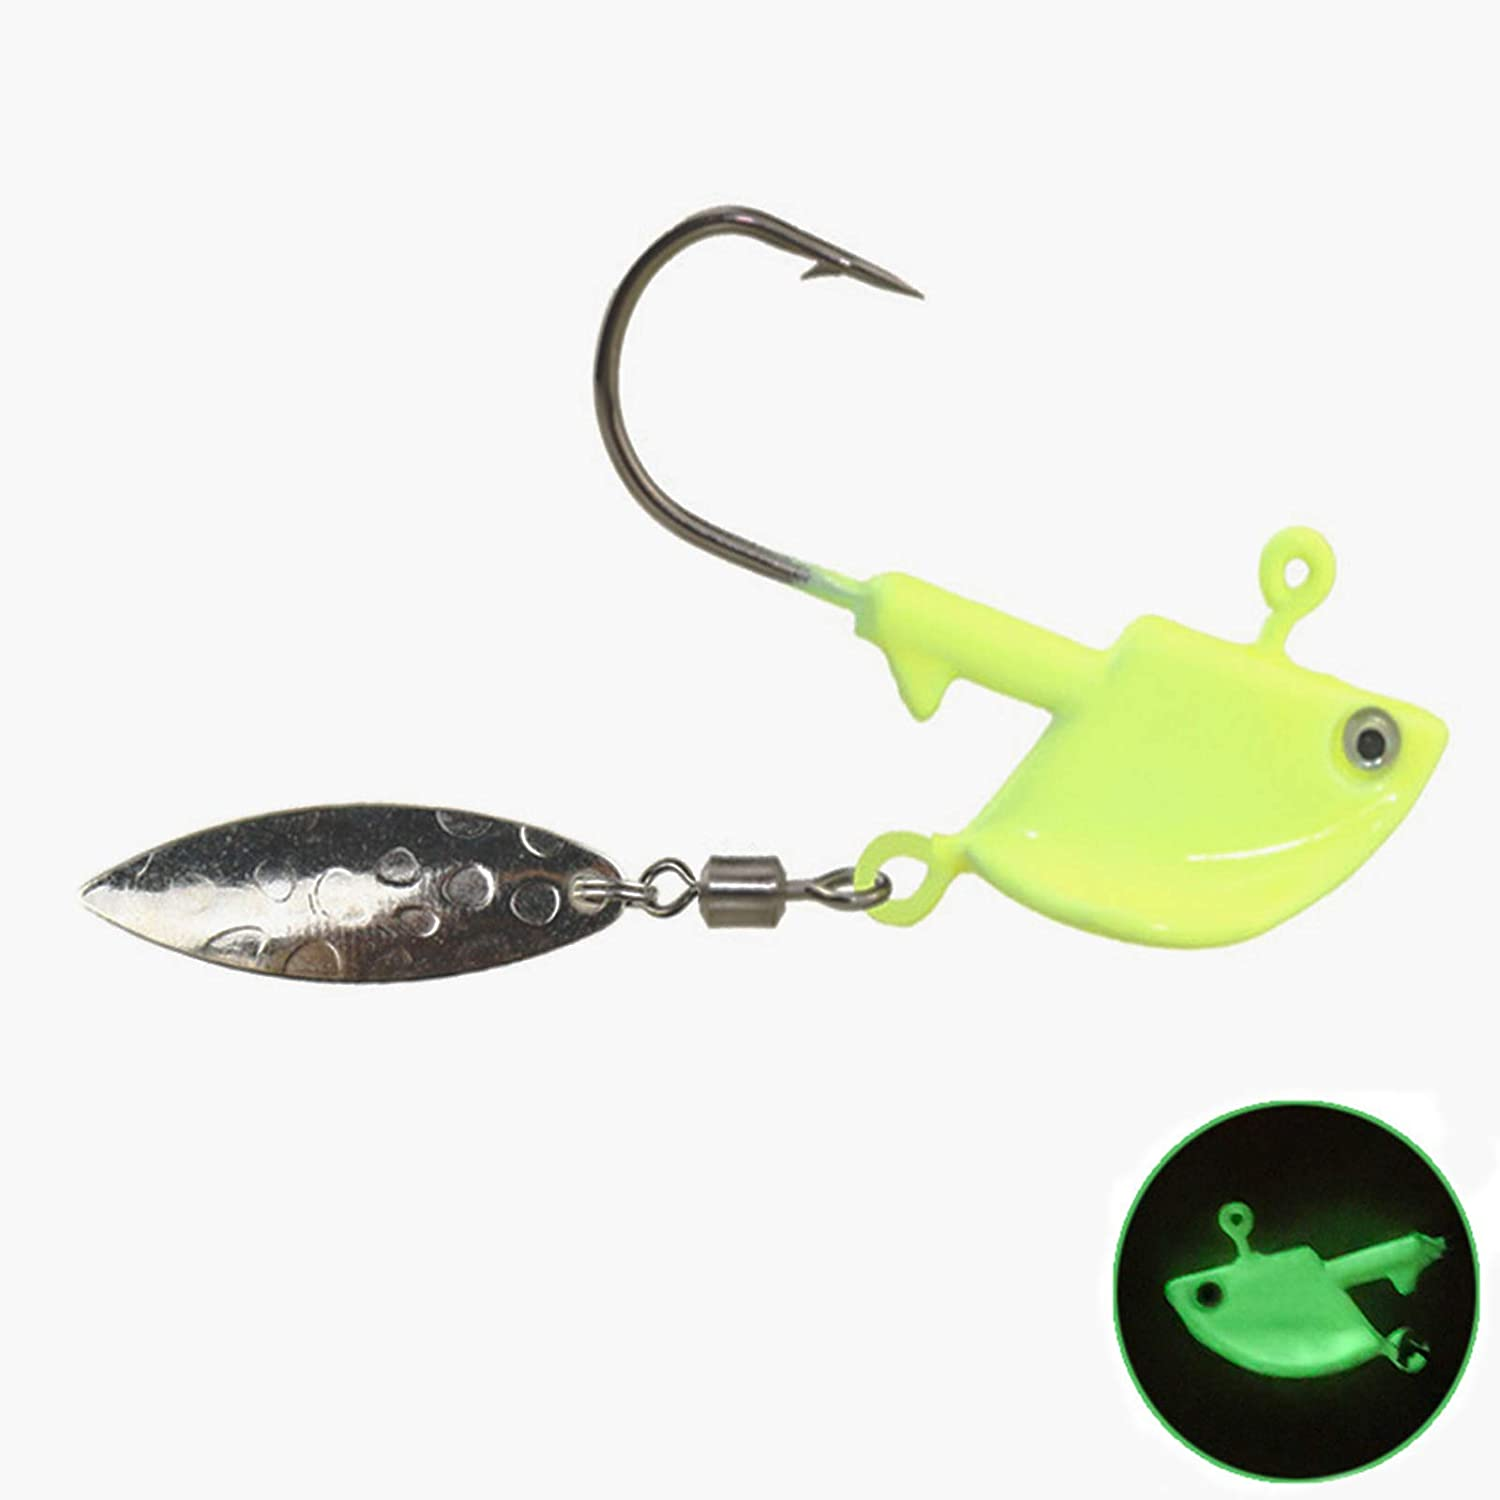 Glow Jig Heads Mail order cheap with Spinner Hooks Accessories New products, world's highest quality popular! Lures Fishing Jigs